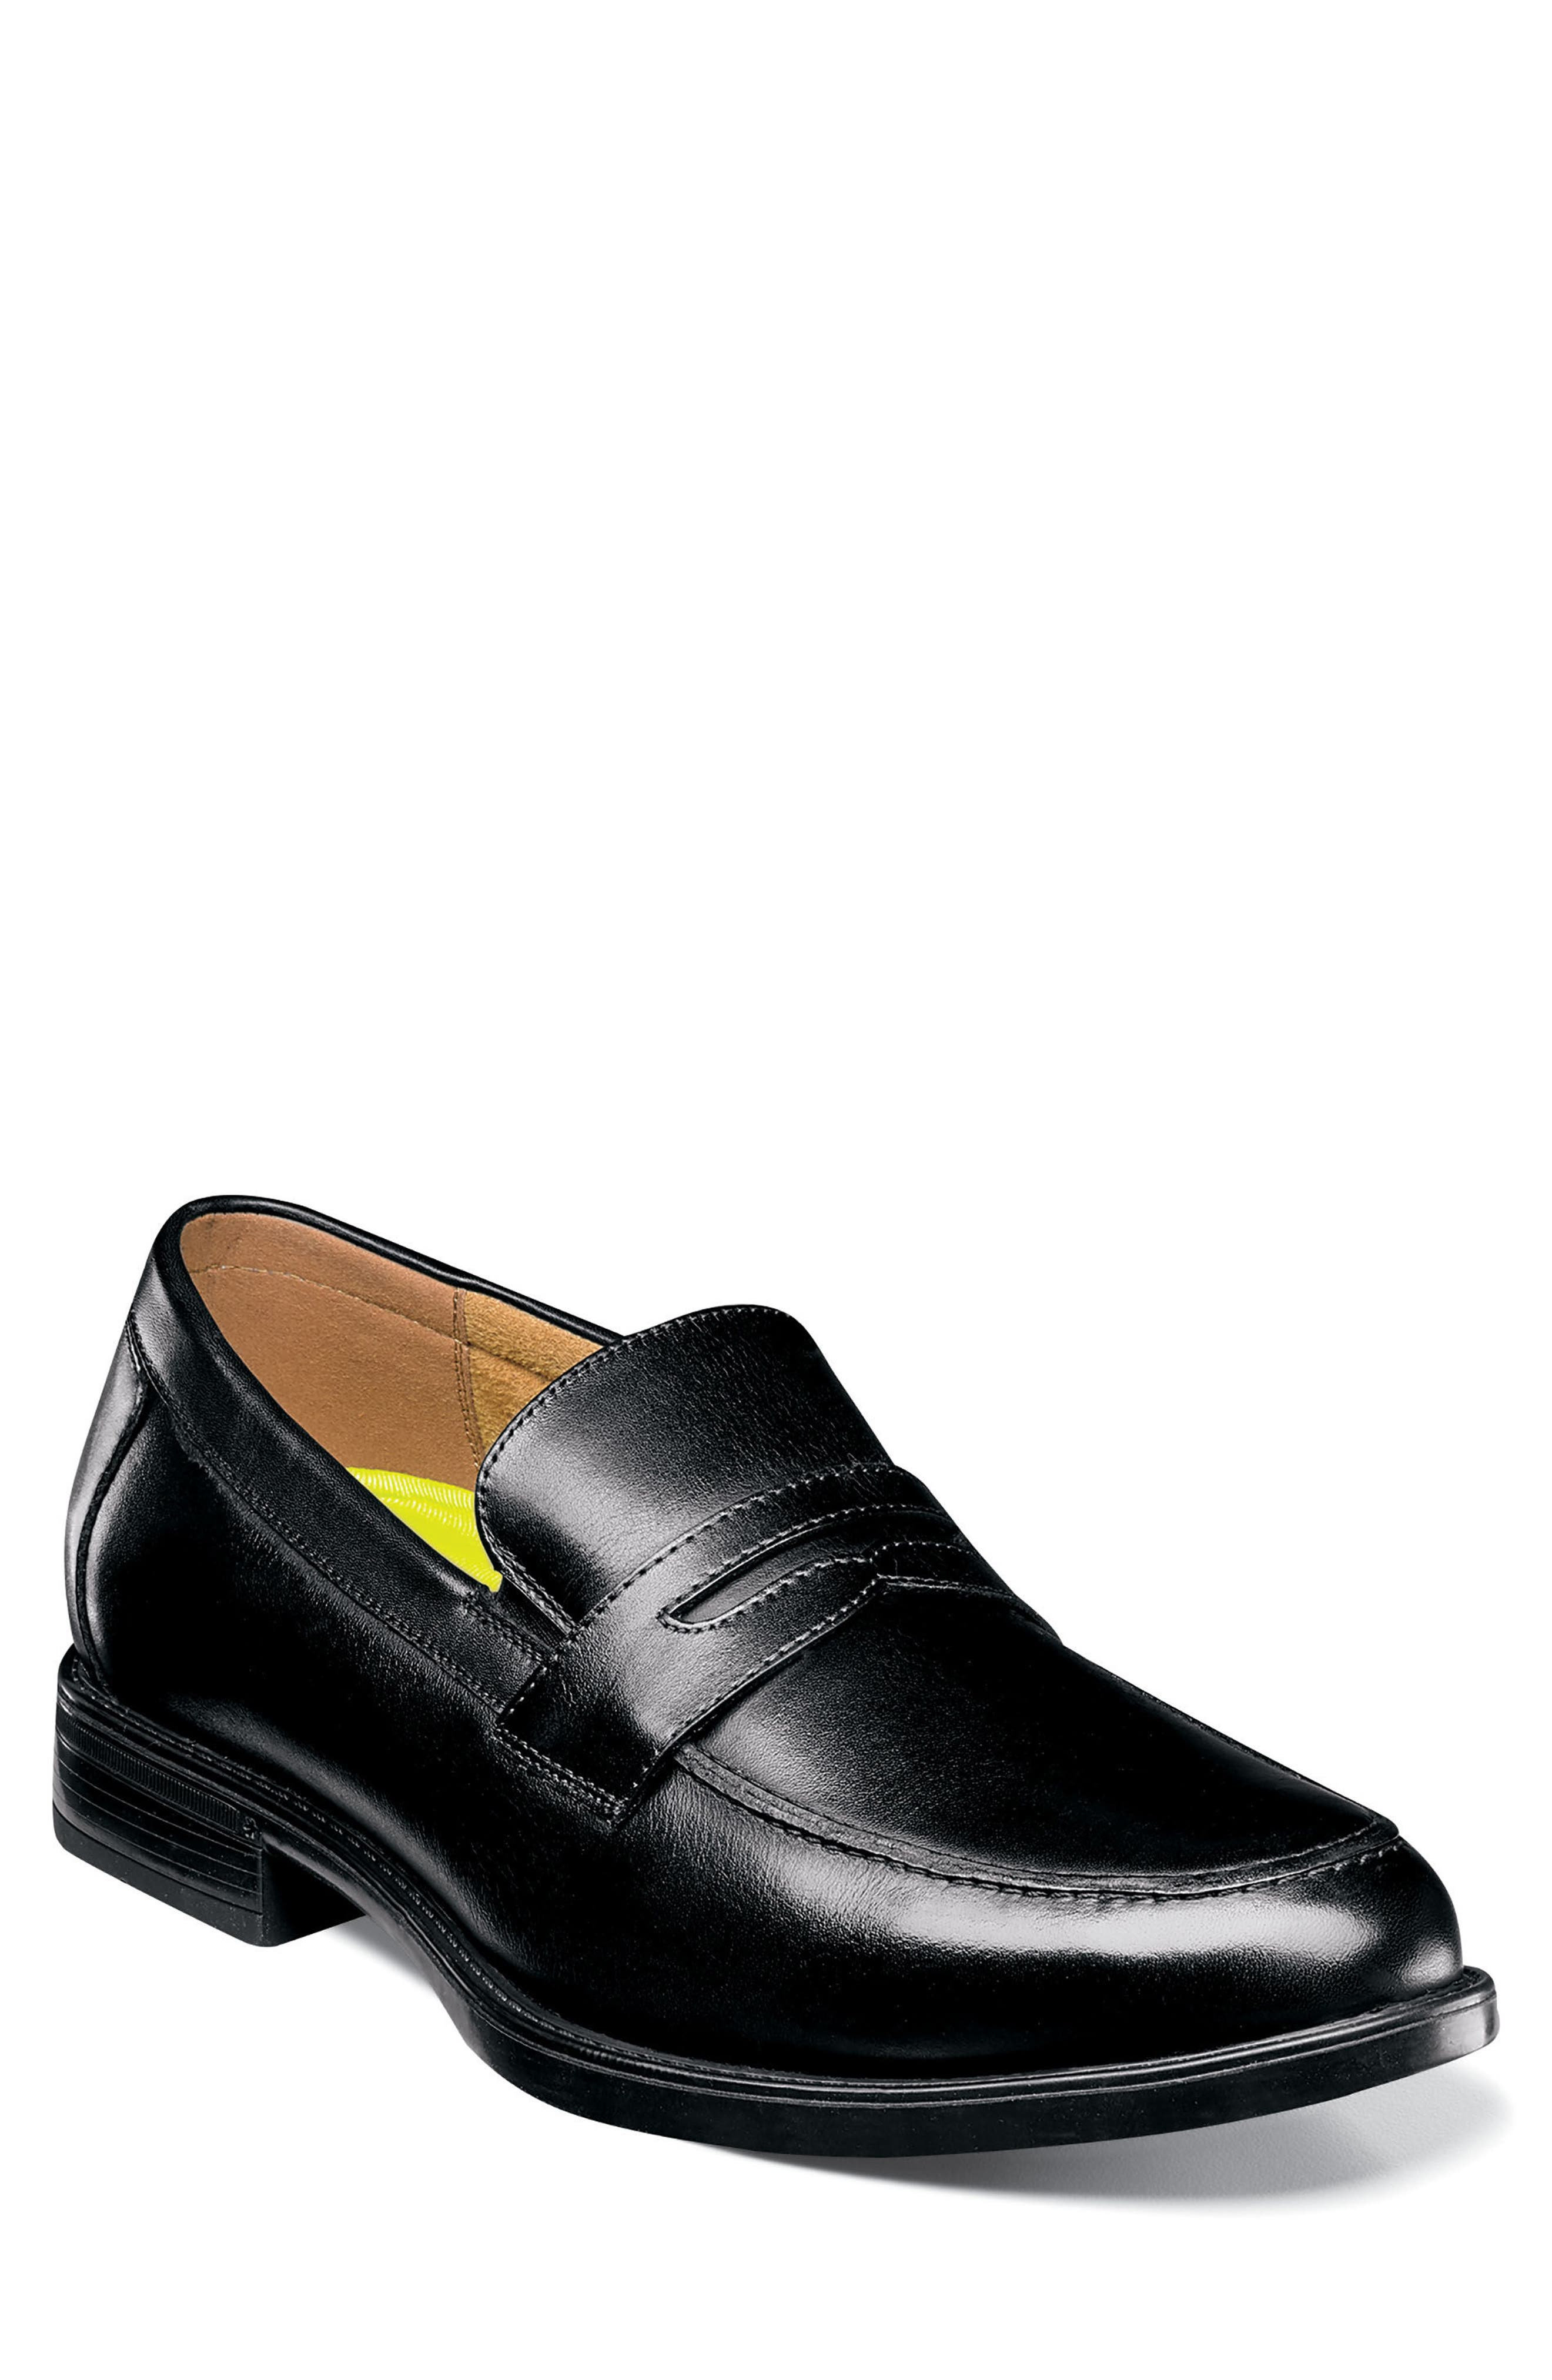 Midtown Penny Loafer,                             Main thumbnail 1, color,                             001